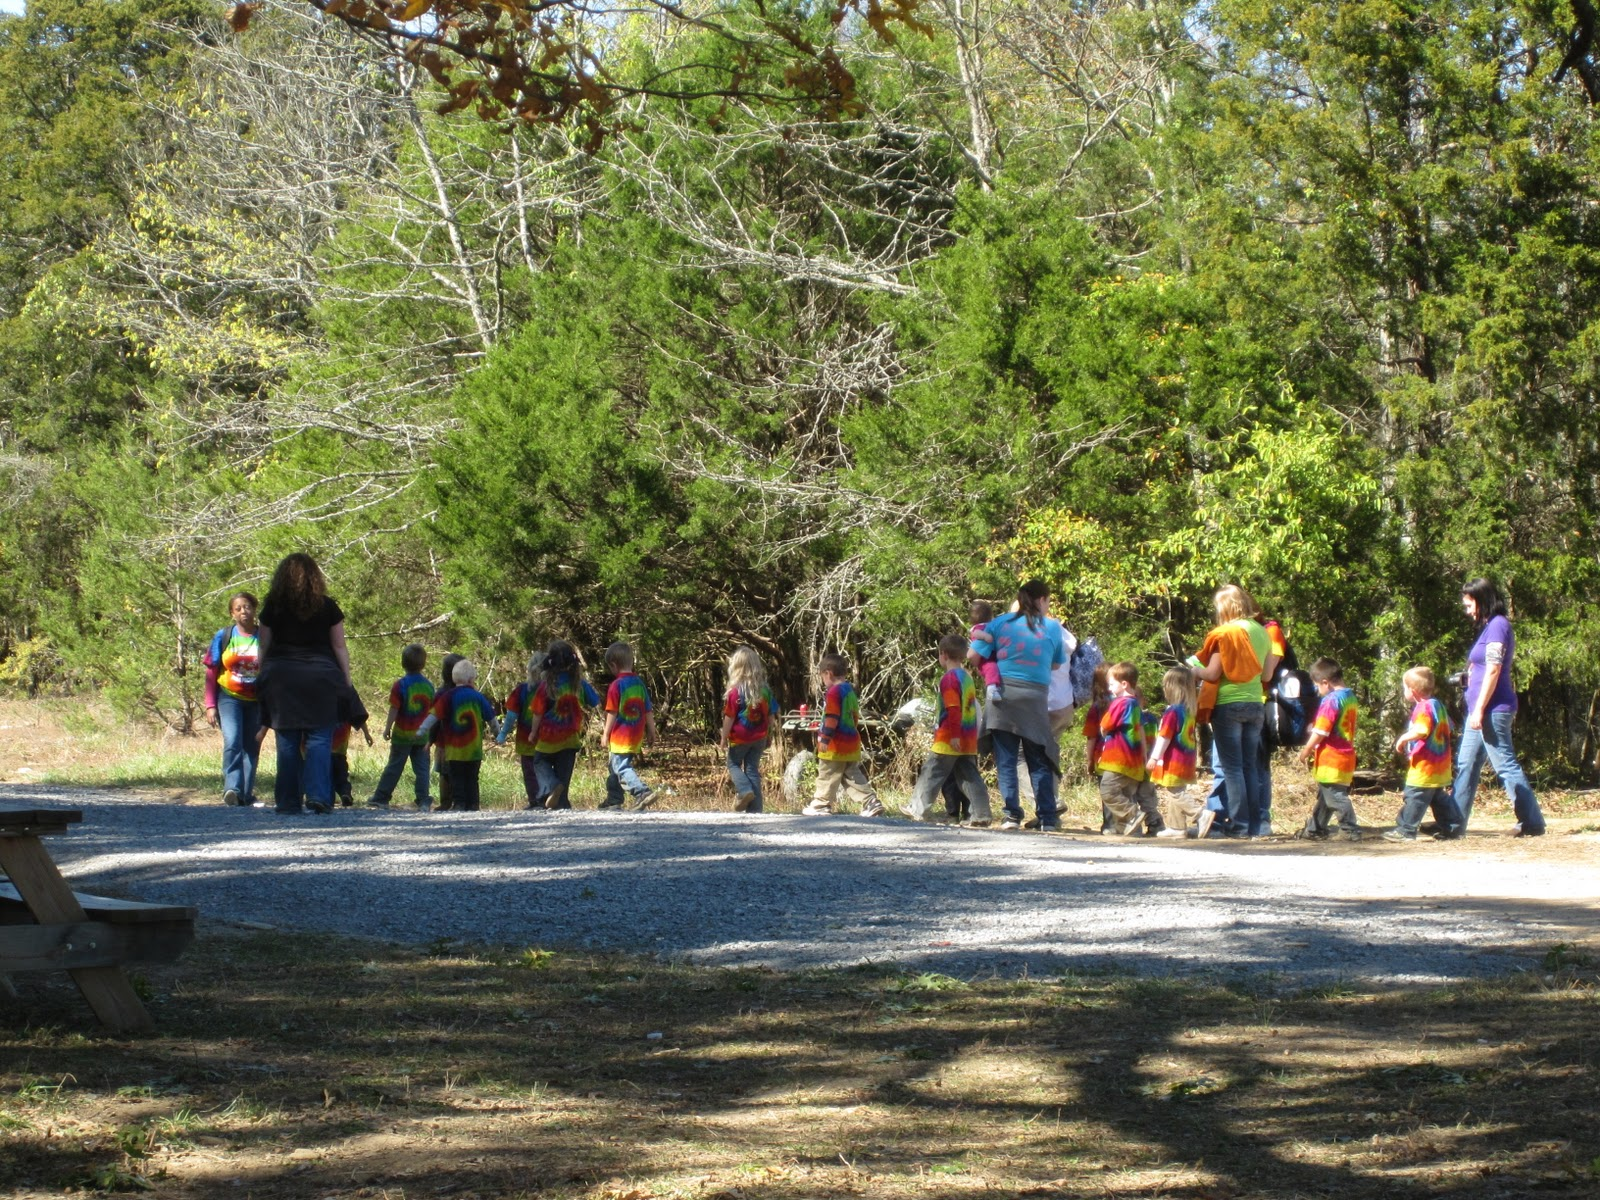 the pre k field trip was leaving just as we sat down to lunch